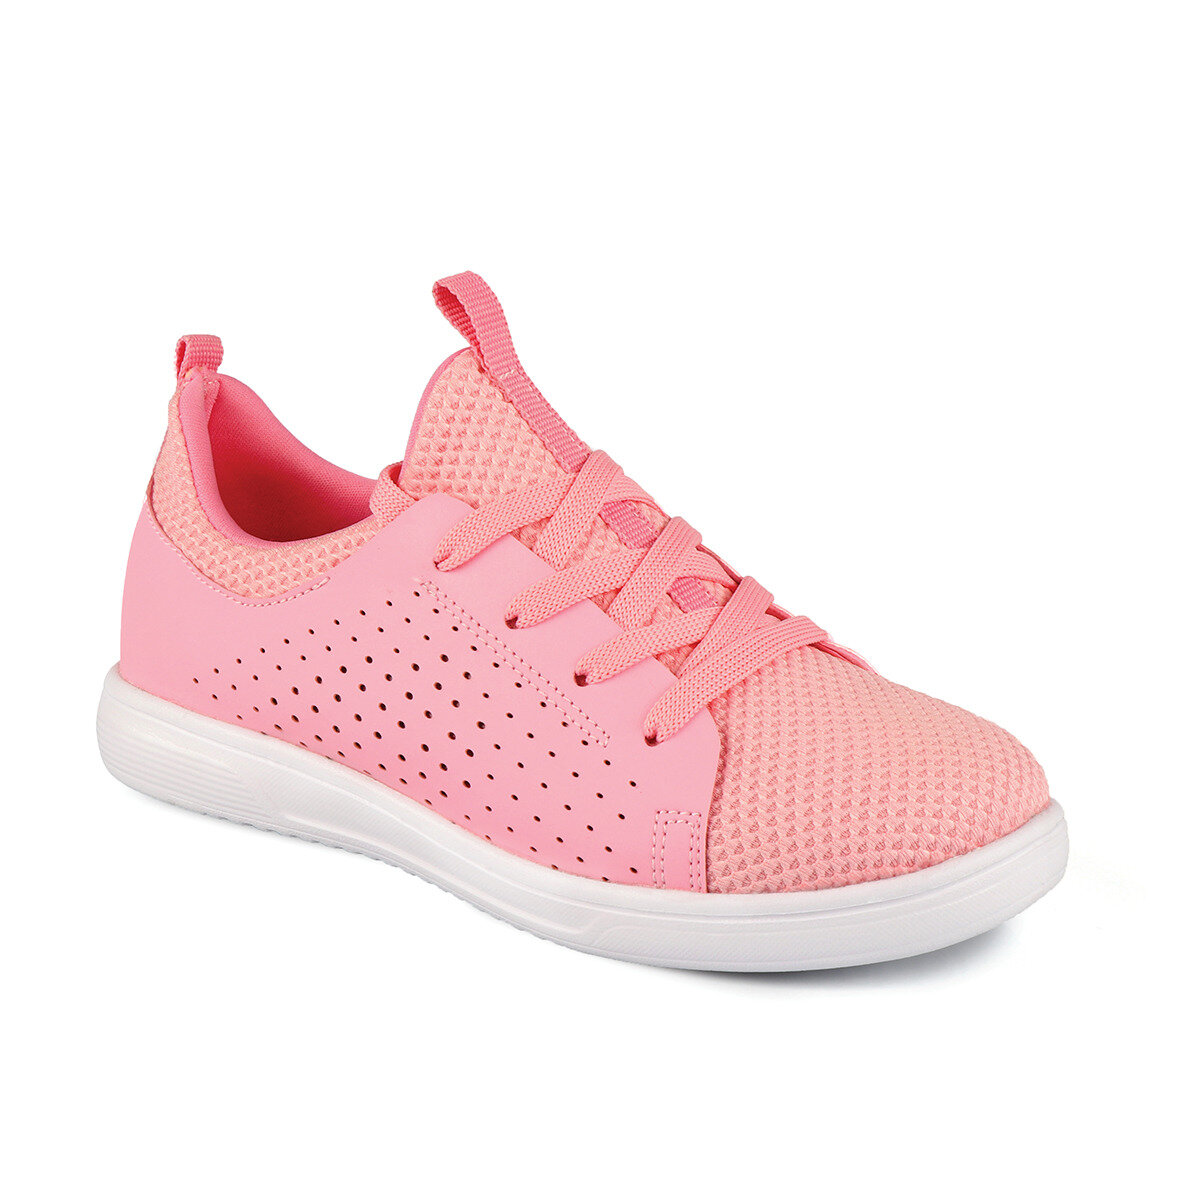 FLO 951.19Y. 529 BOOTIES PHYLON Pink Female Child Thick Soled Sneaker VICCO